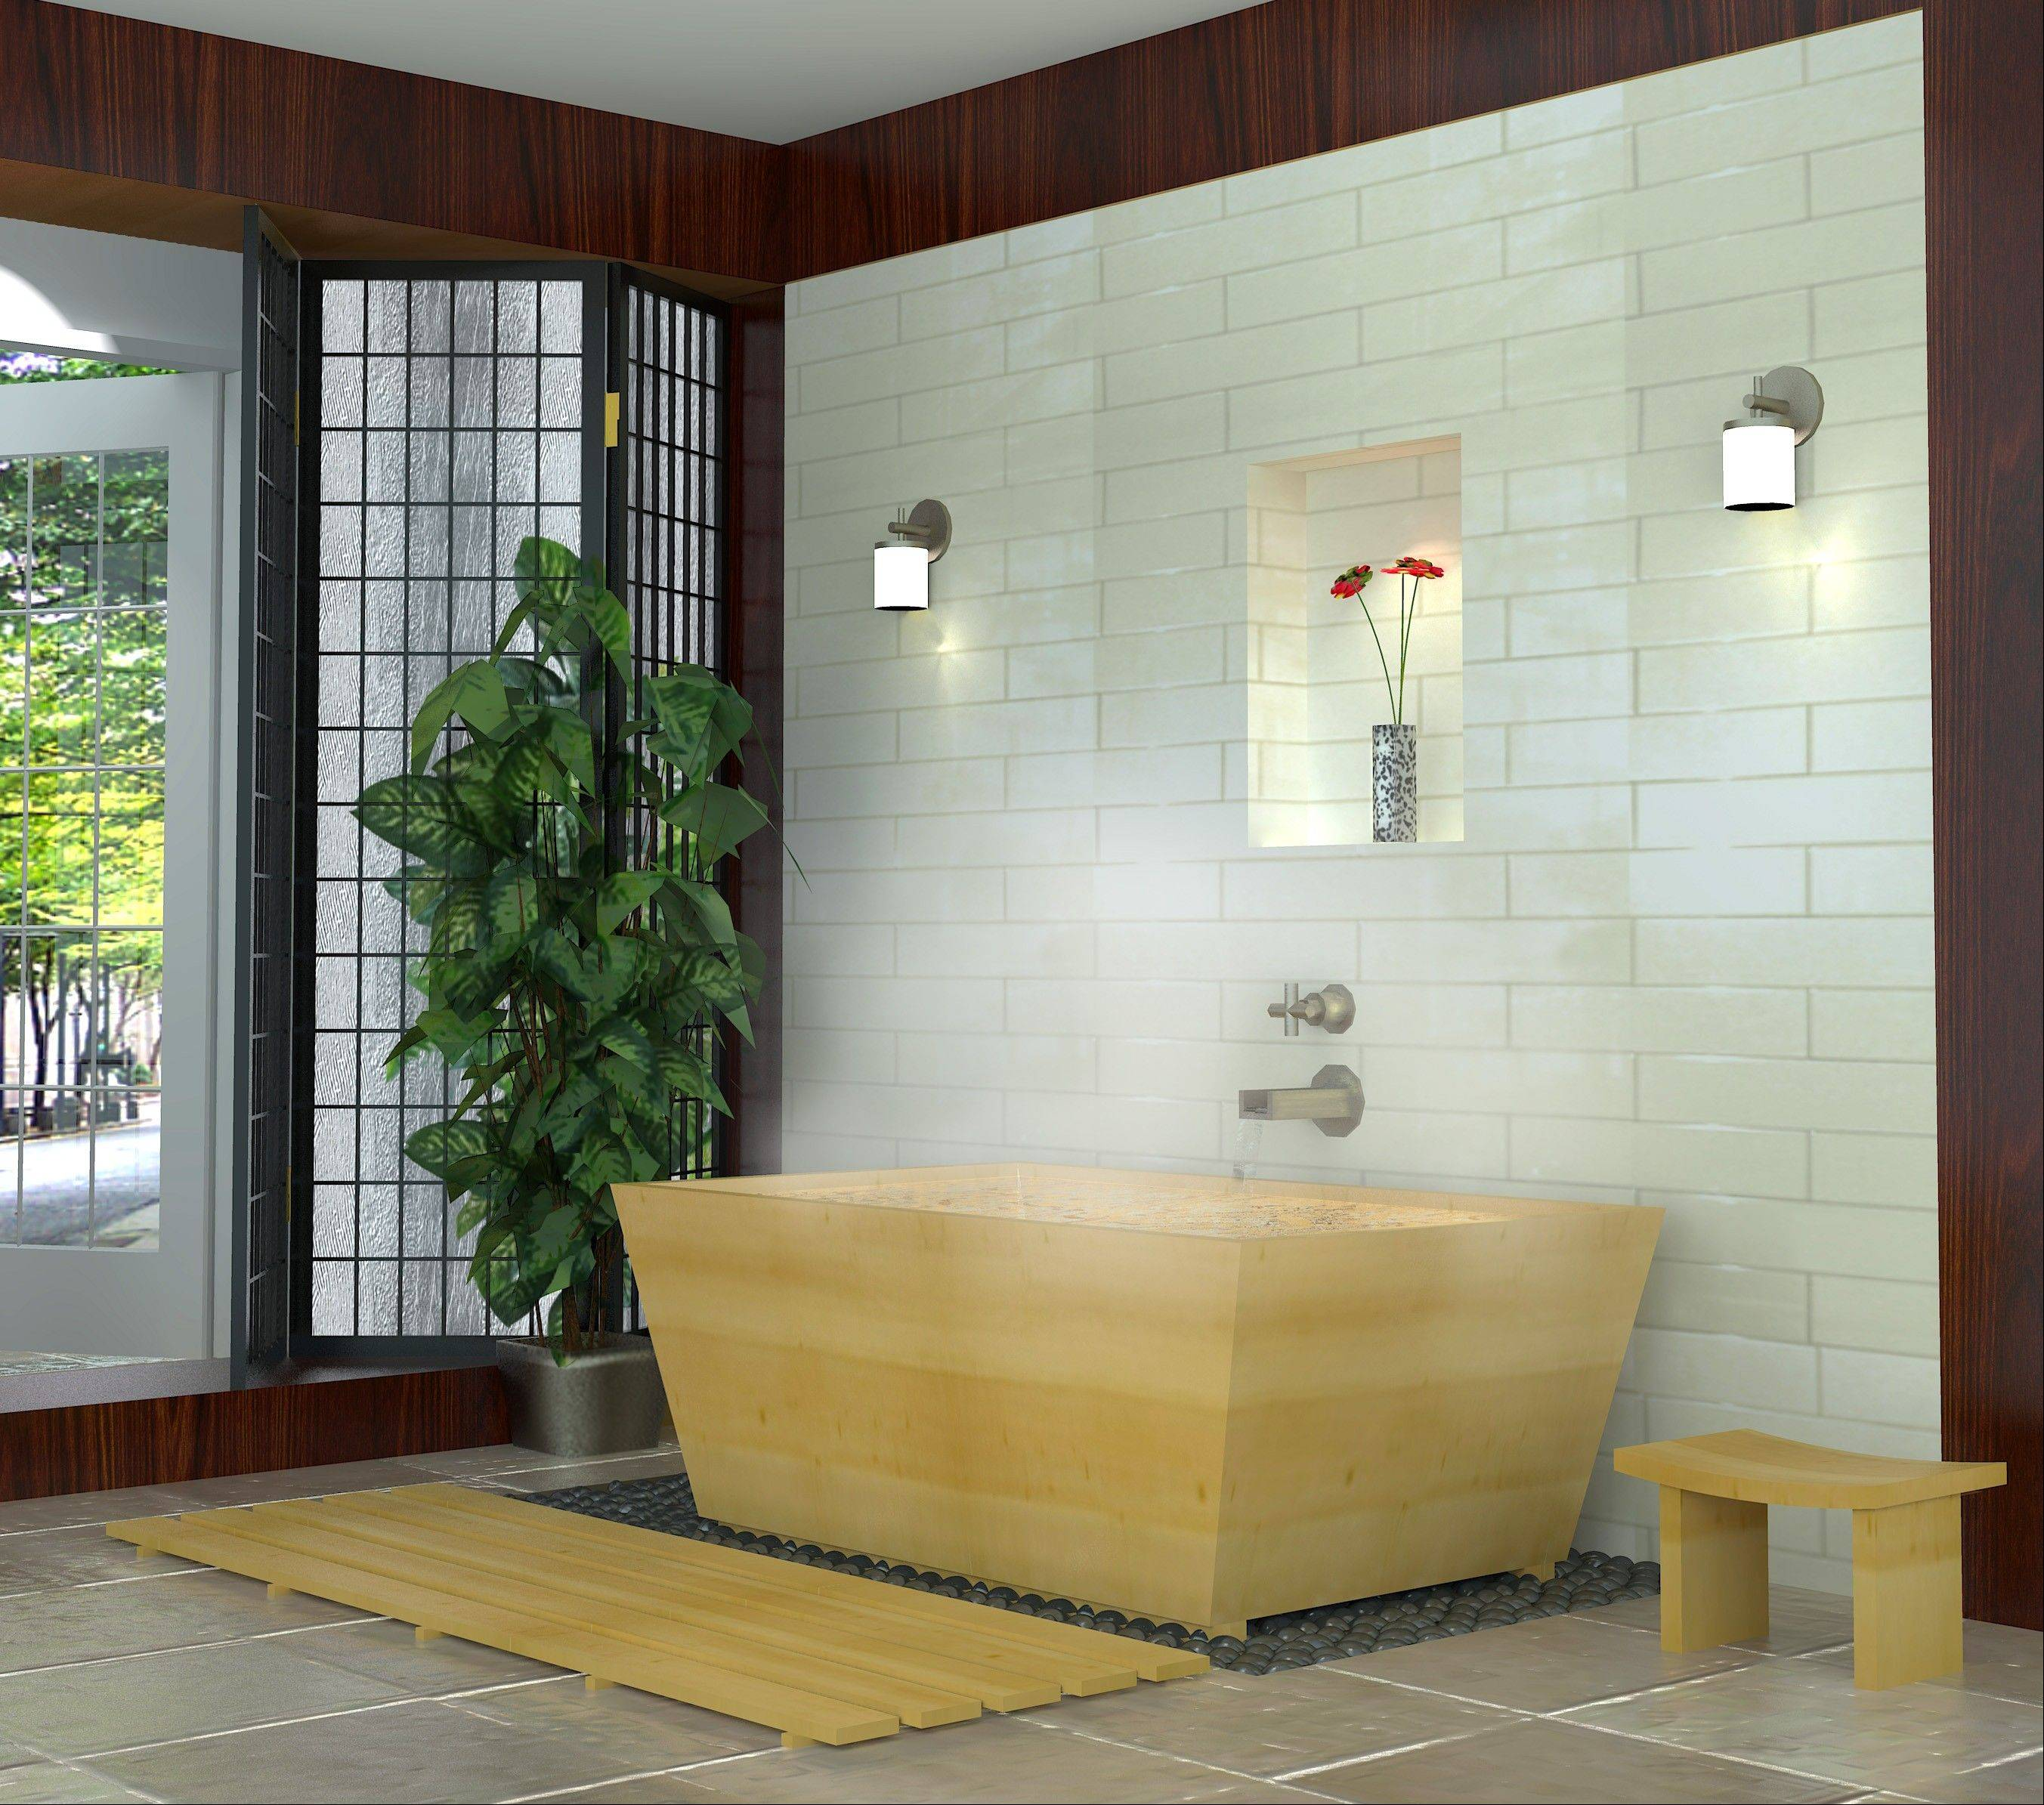 The Sea Otter Woodworks' Kyoto large soaking tub is made of fragrant Hinoki cypress.